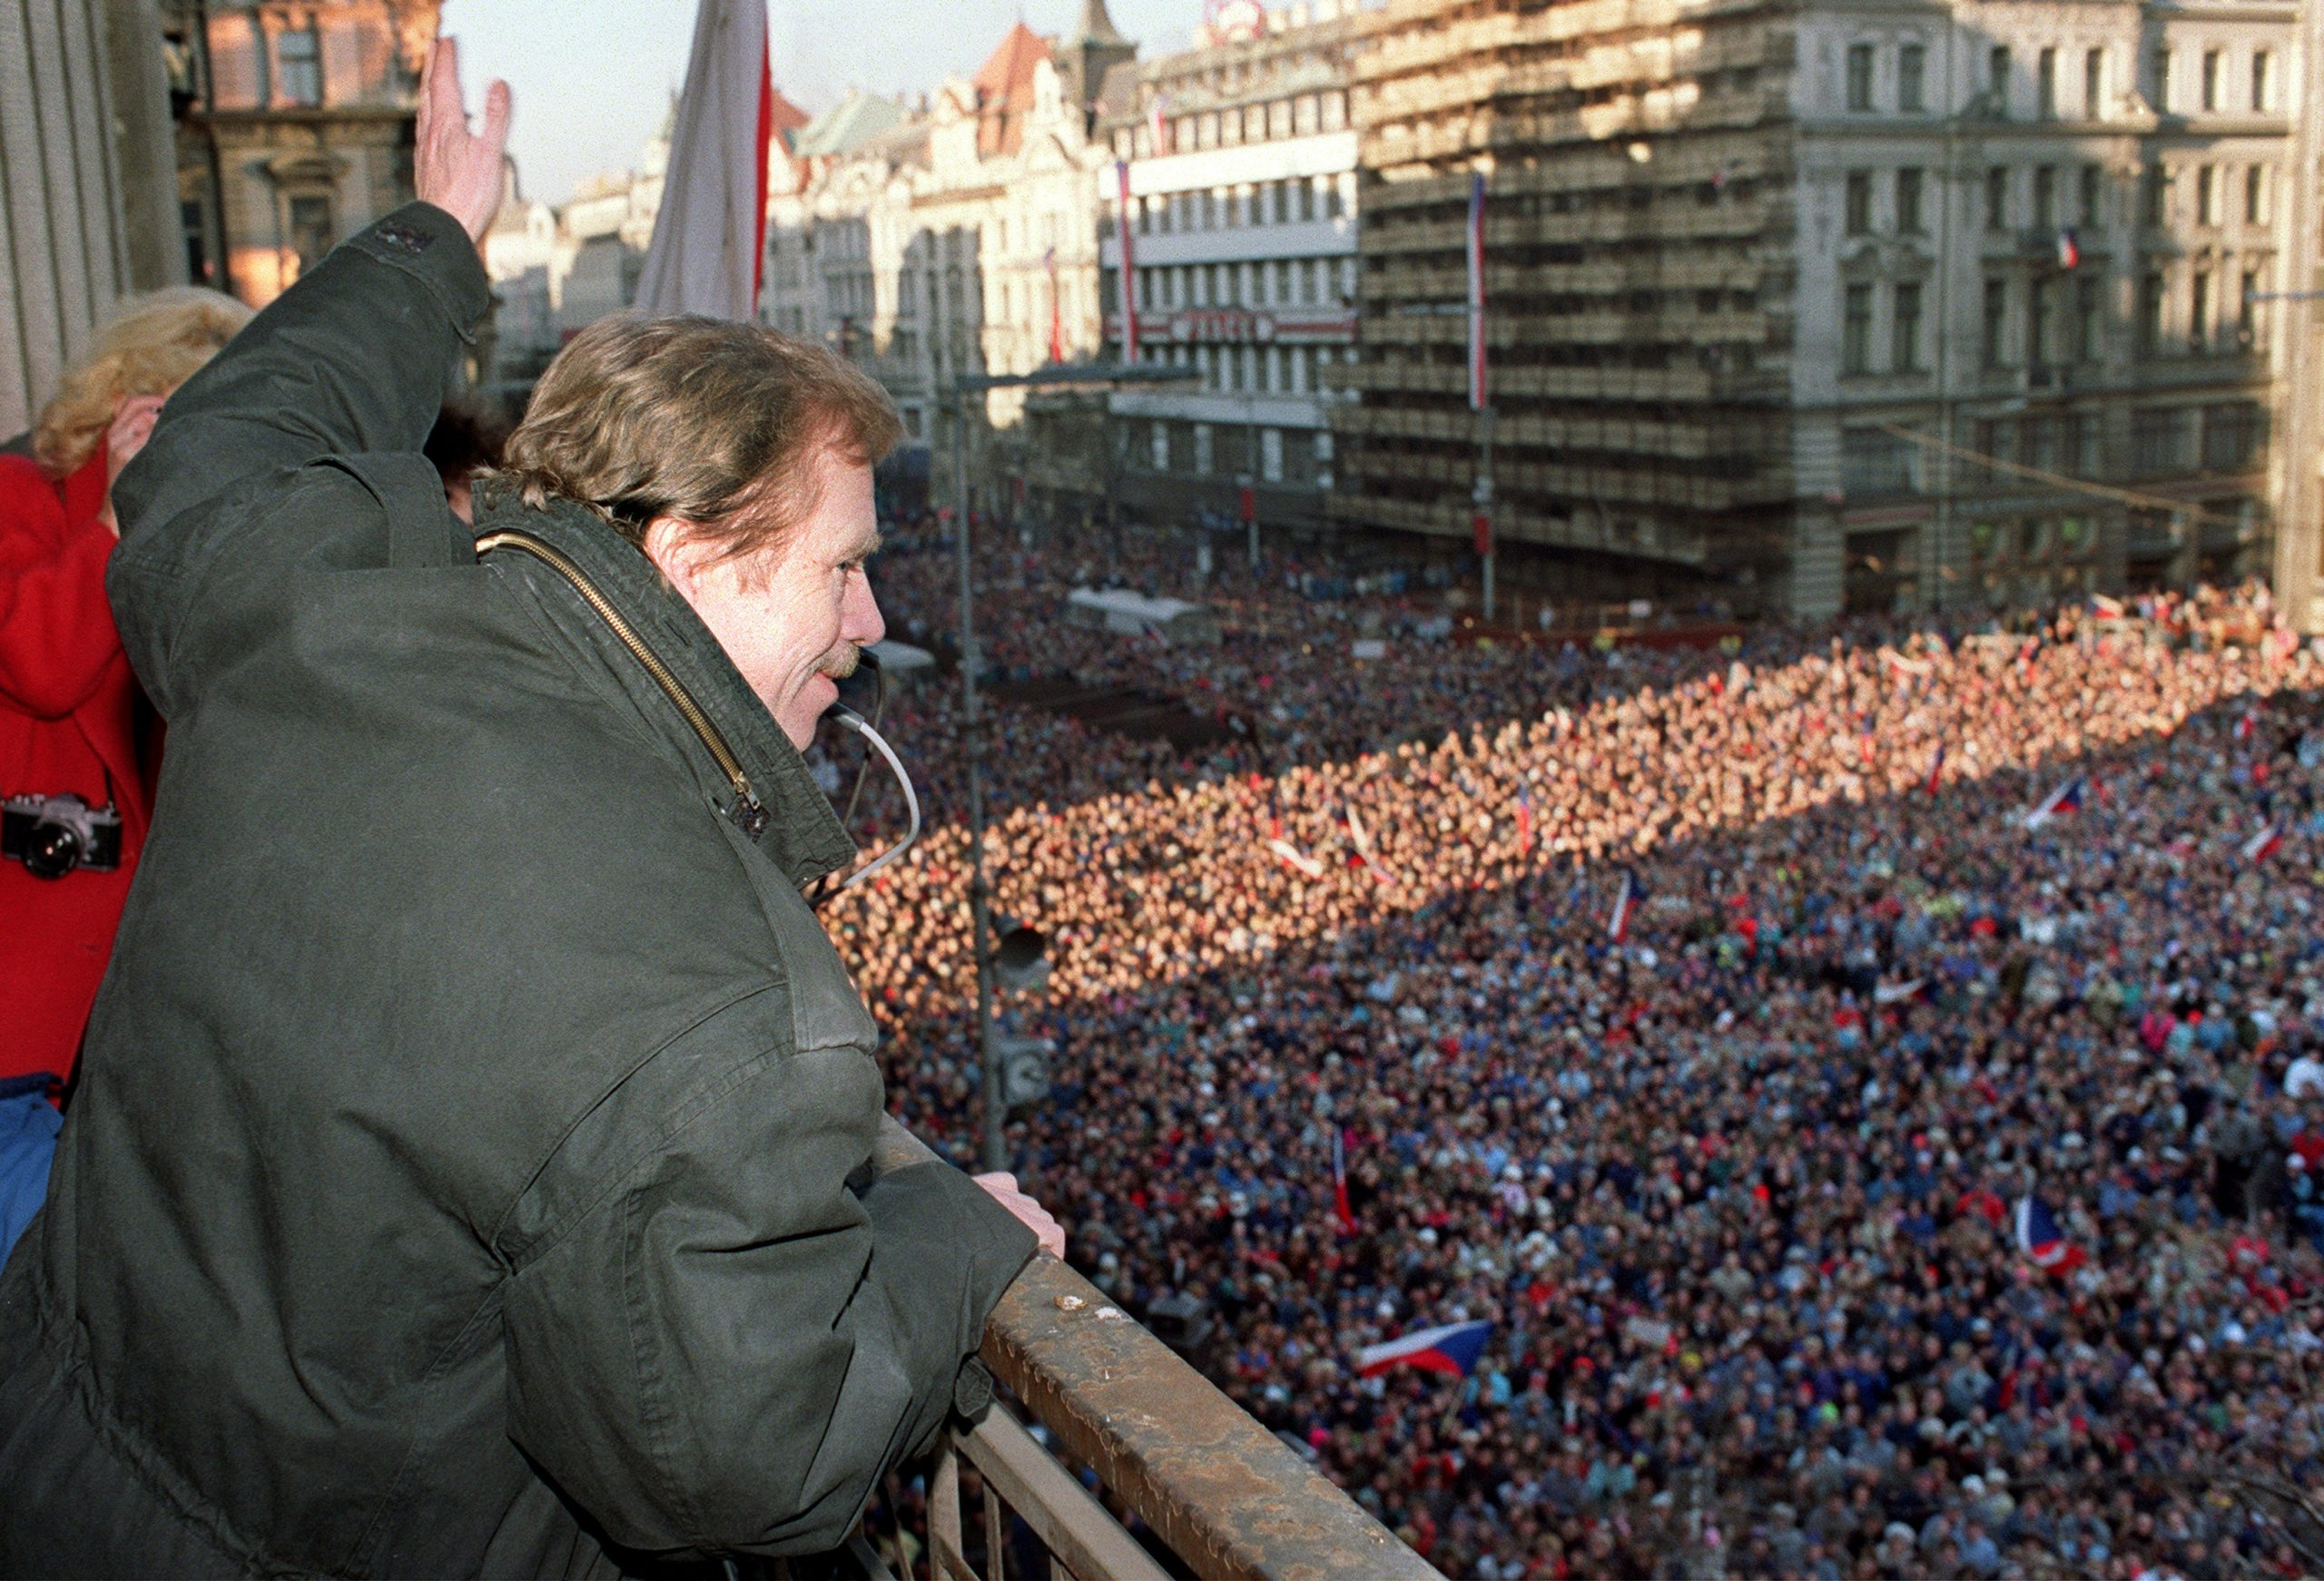 Vaclav Havel, a dissident playwright and leading member of the Czechoslovak opposition Civic Forum, who drafted large parts of Charter 77, the declaration which helped attract international attention to the civil rights abuses in Czechoslovakia, waves 10 December 1989 to the crowd of thousands of demonstrators gathered on Prague's Wenceslas Square, celebrating the communist capitulation and nomination of the new government formed by Marian Calfa from Slovak dissident movement the Public Against Violence. At the end of 1989, Havel was elected first president of the then Czechoslovakia when the state-communist system crumbled in the Velvet Revolution. AFP PHOTO LUBOMIR KOTEK        (Photo credit should read LUBOMIR KOTEK/AFP/Getty Images)